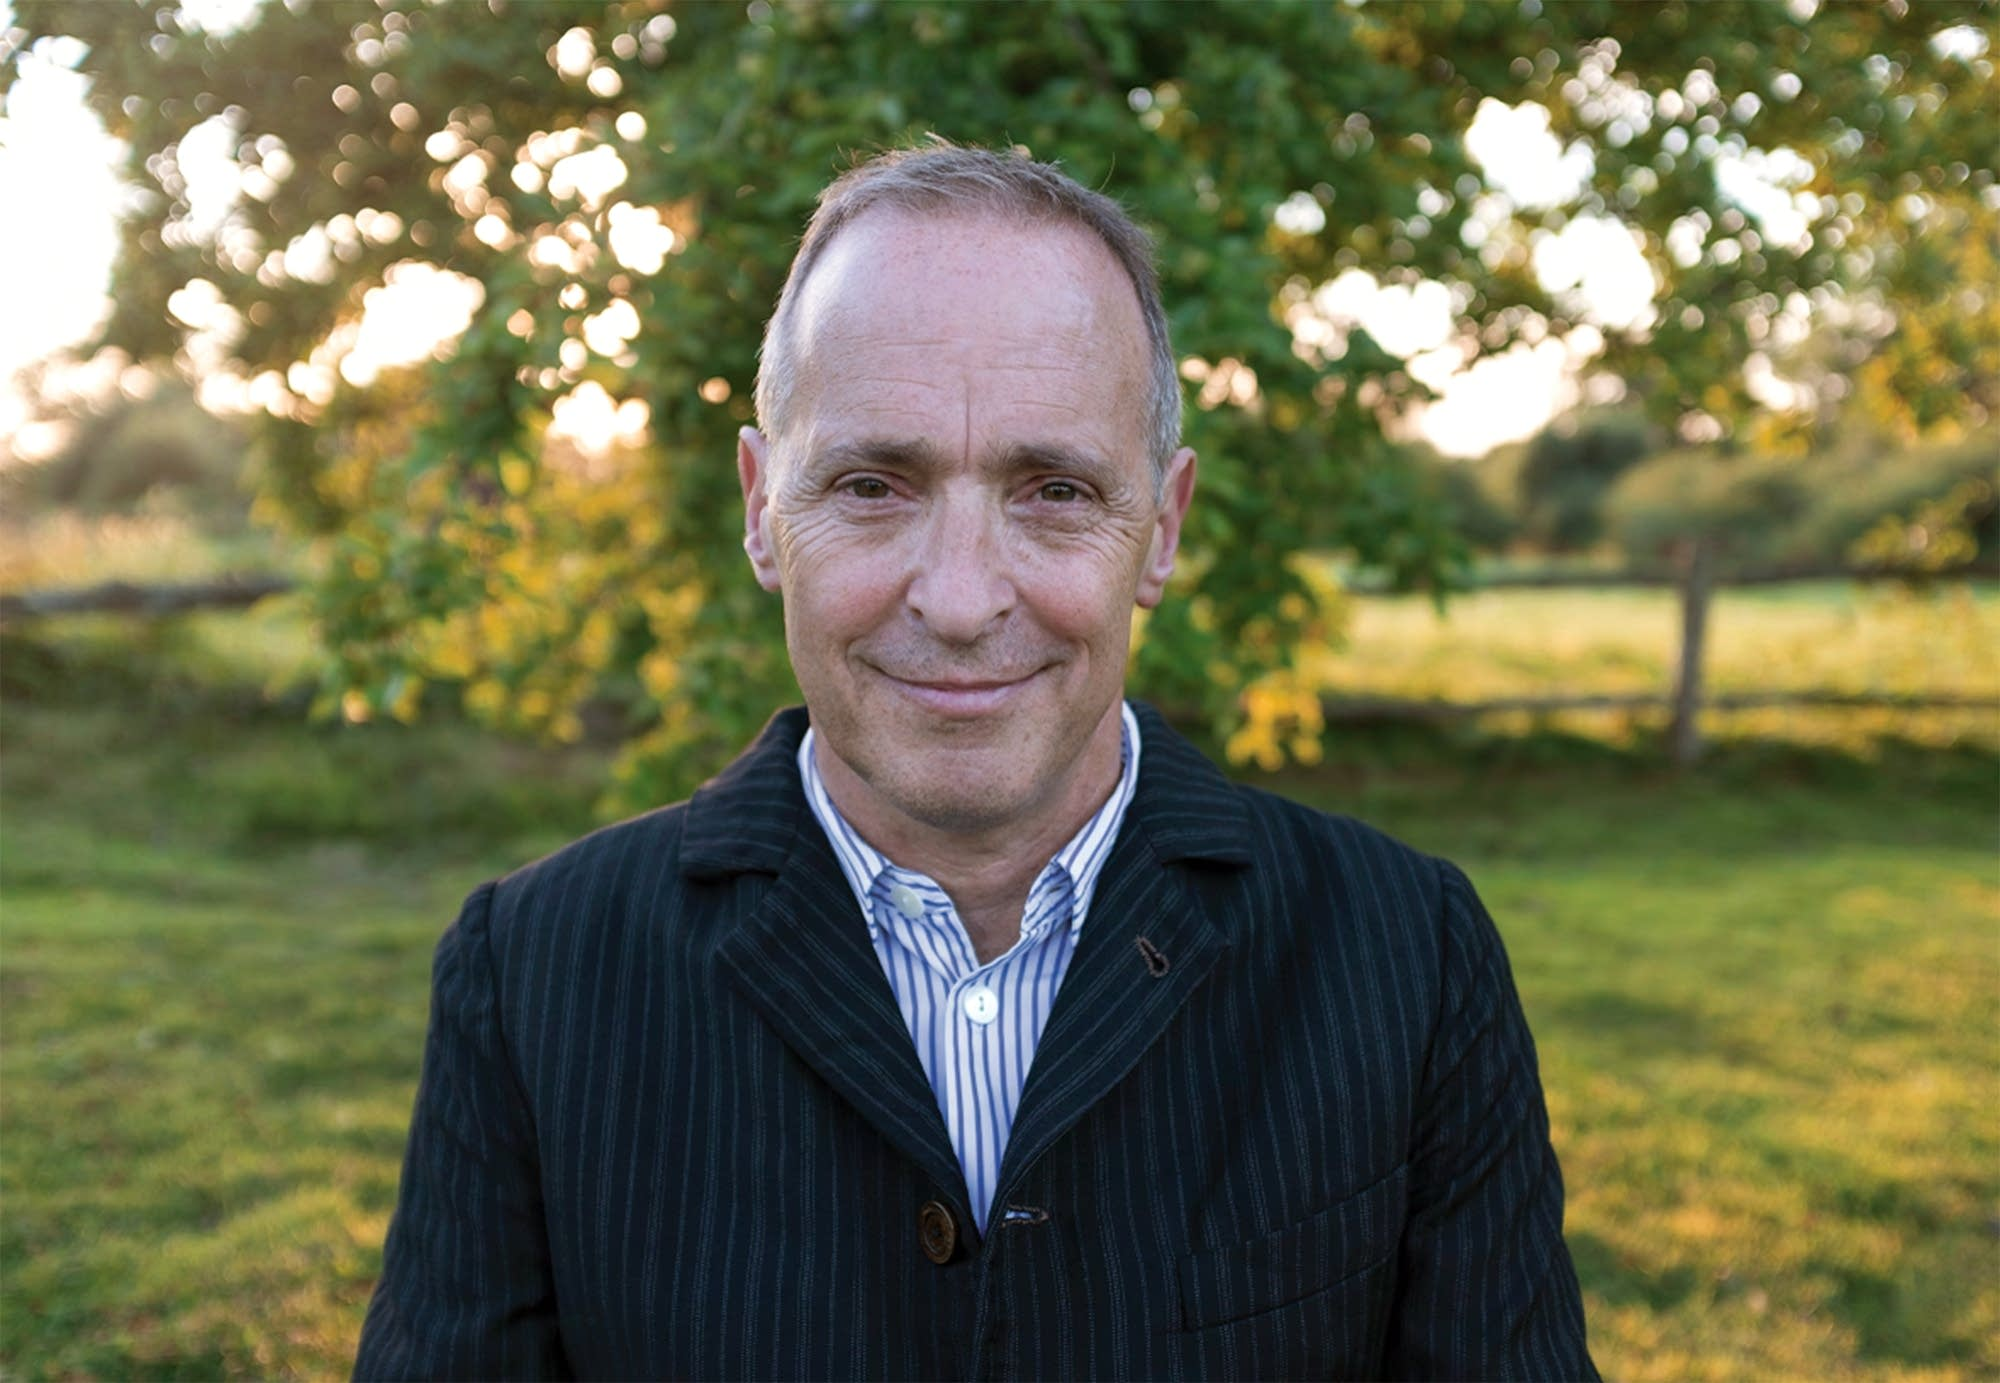 David Sedaris will read from his latest essay collection in Duluth.